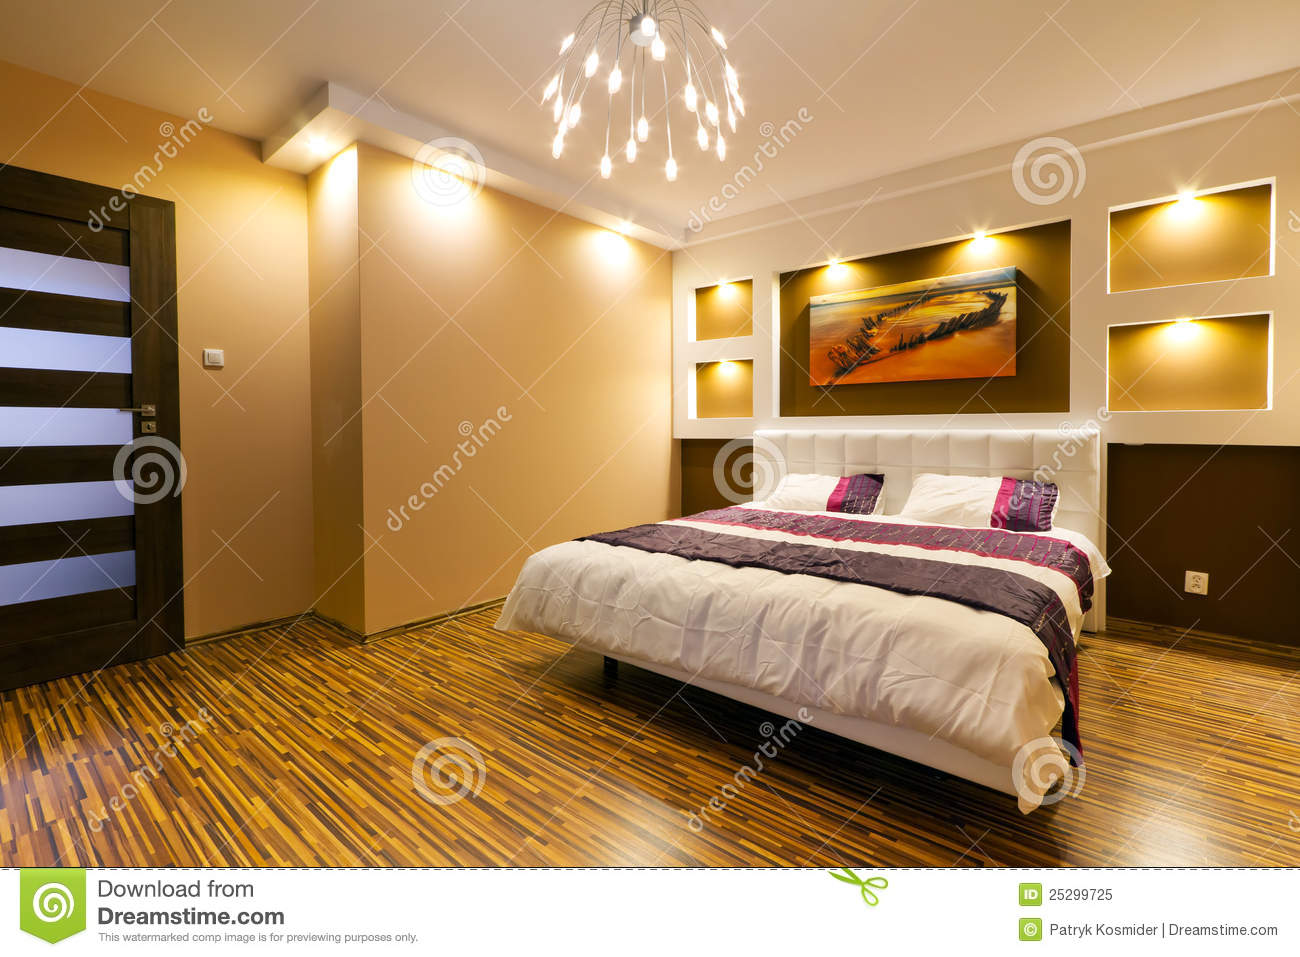 Modern master bedroom interior royalty free stock photo for Master bedroom interior